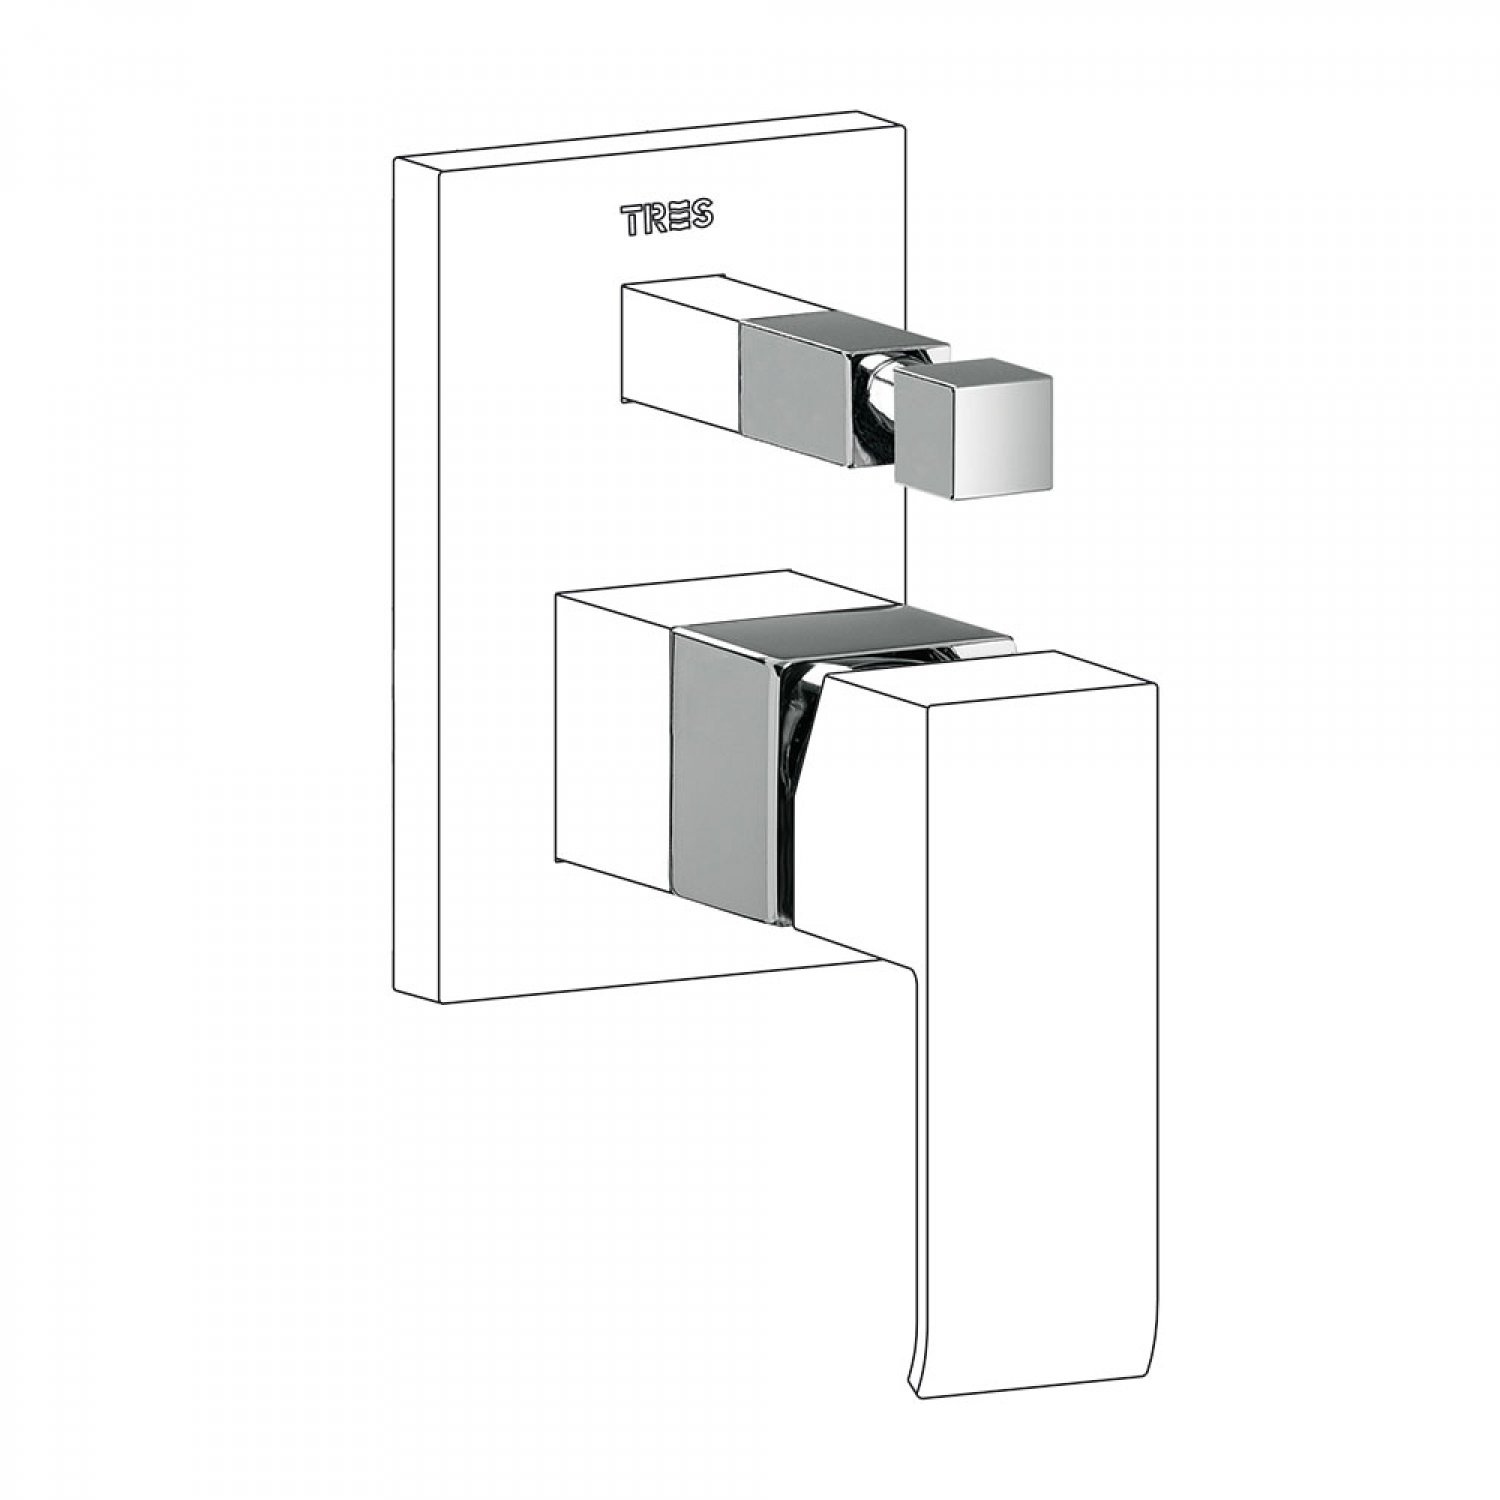 http://desidea.hu/wp-content/uploads/2019/07/Extensions-for-built-in-bathtub-shower-mixer-tap-10618010.jpg